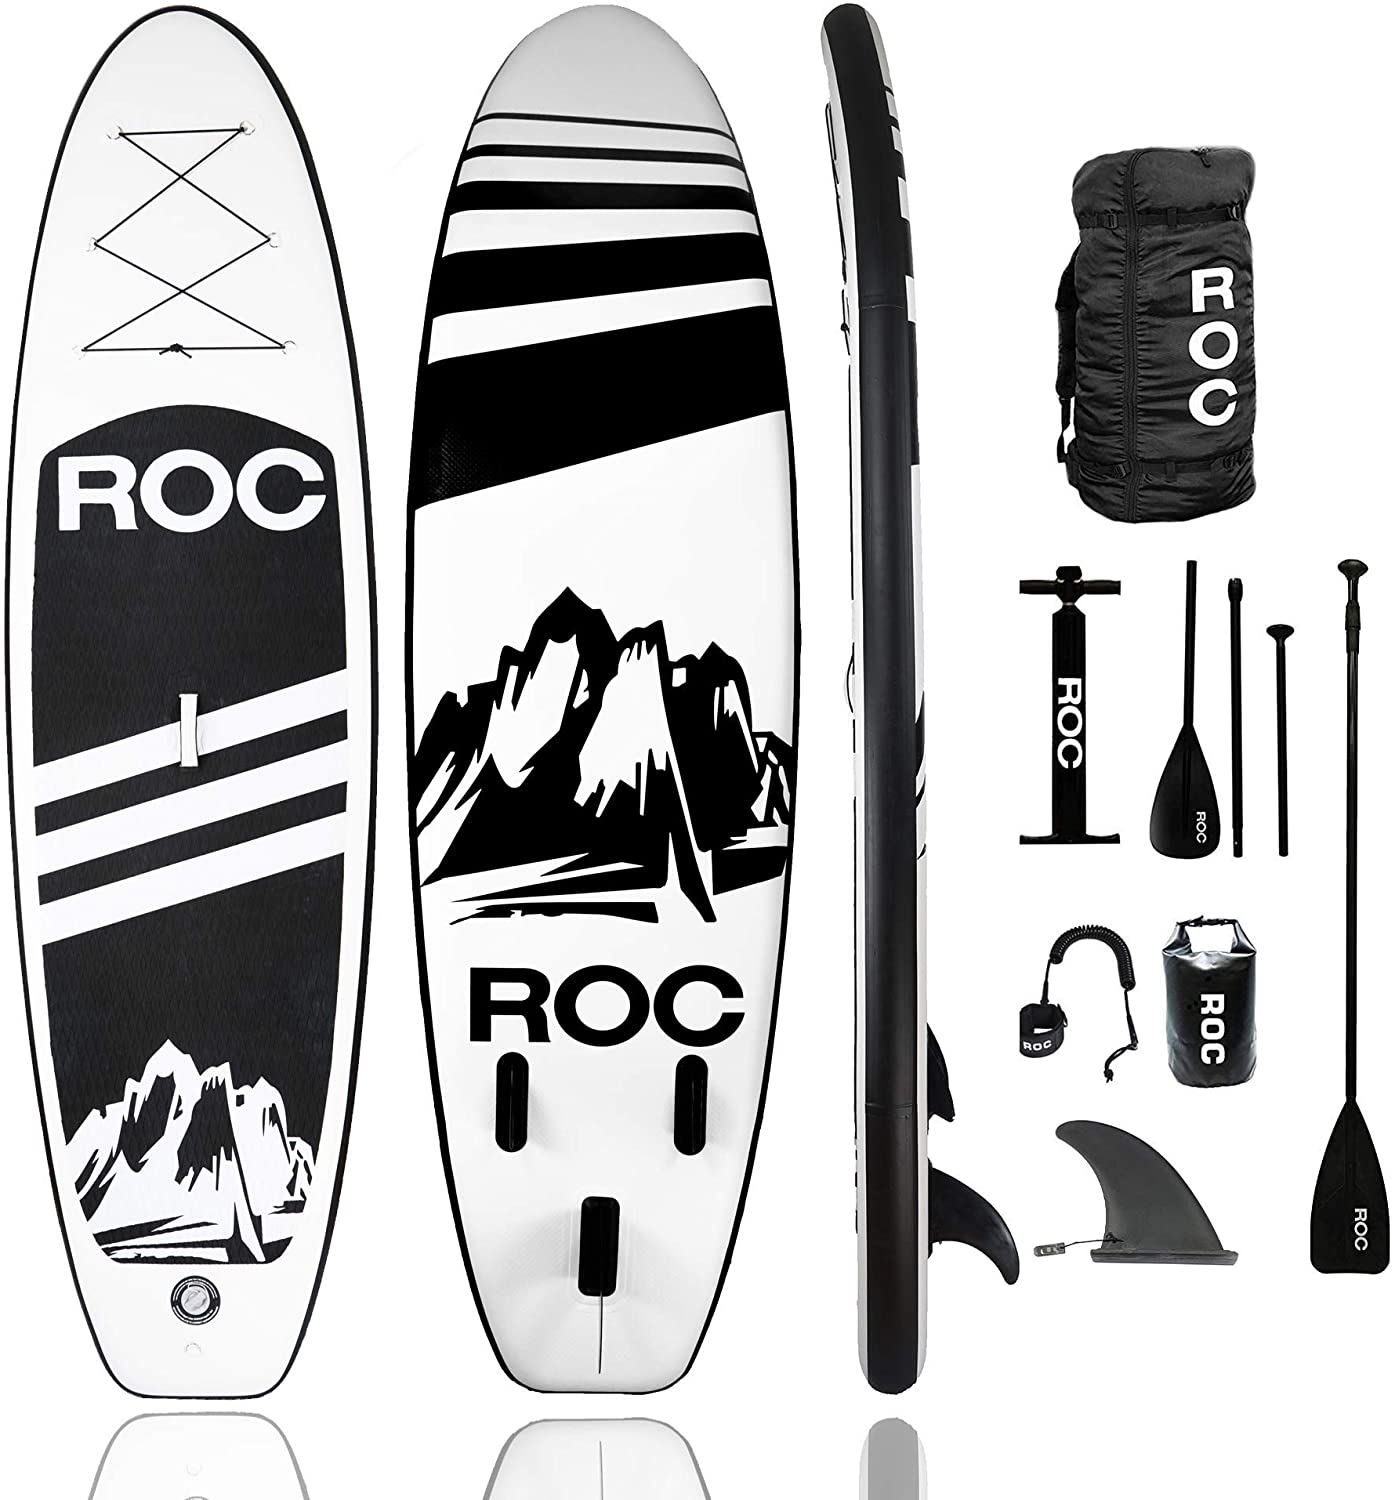 roc-inflatable-paddleboard-black